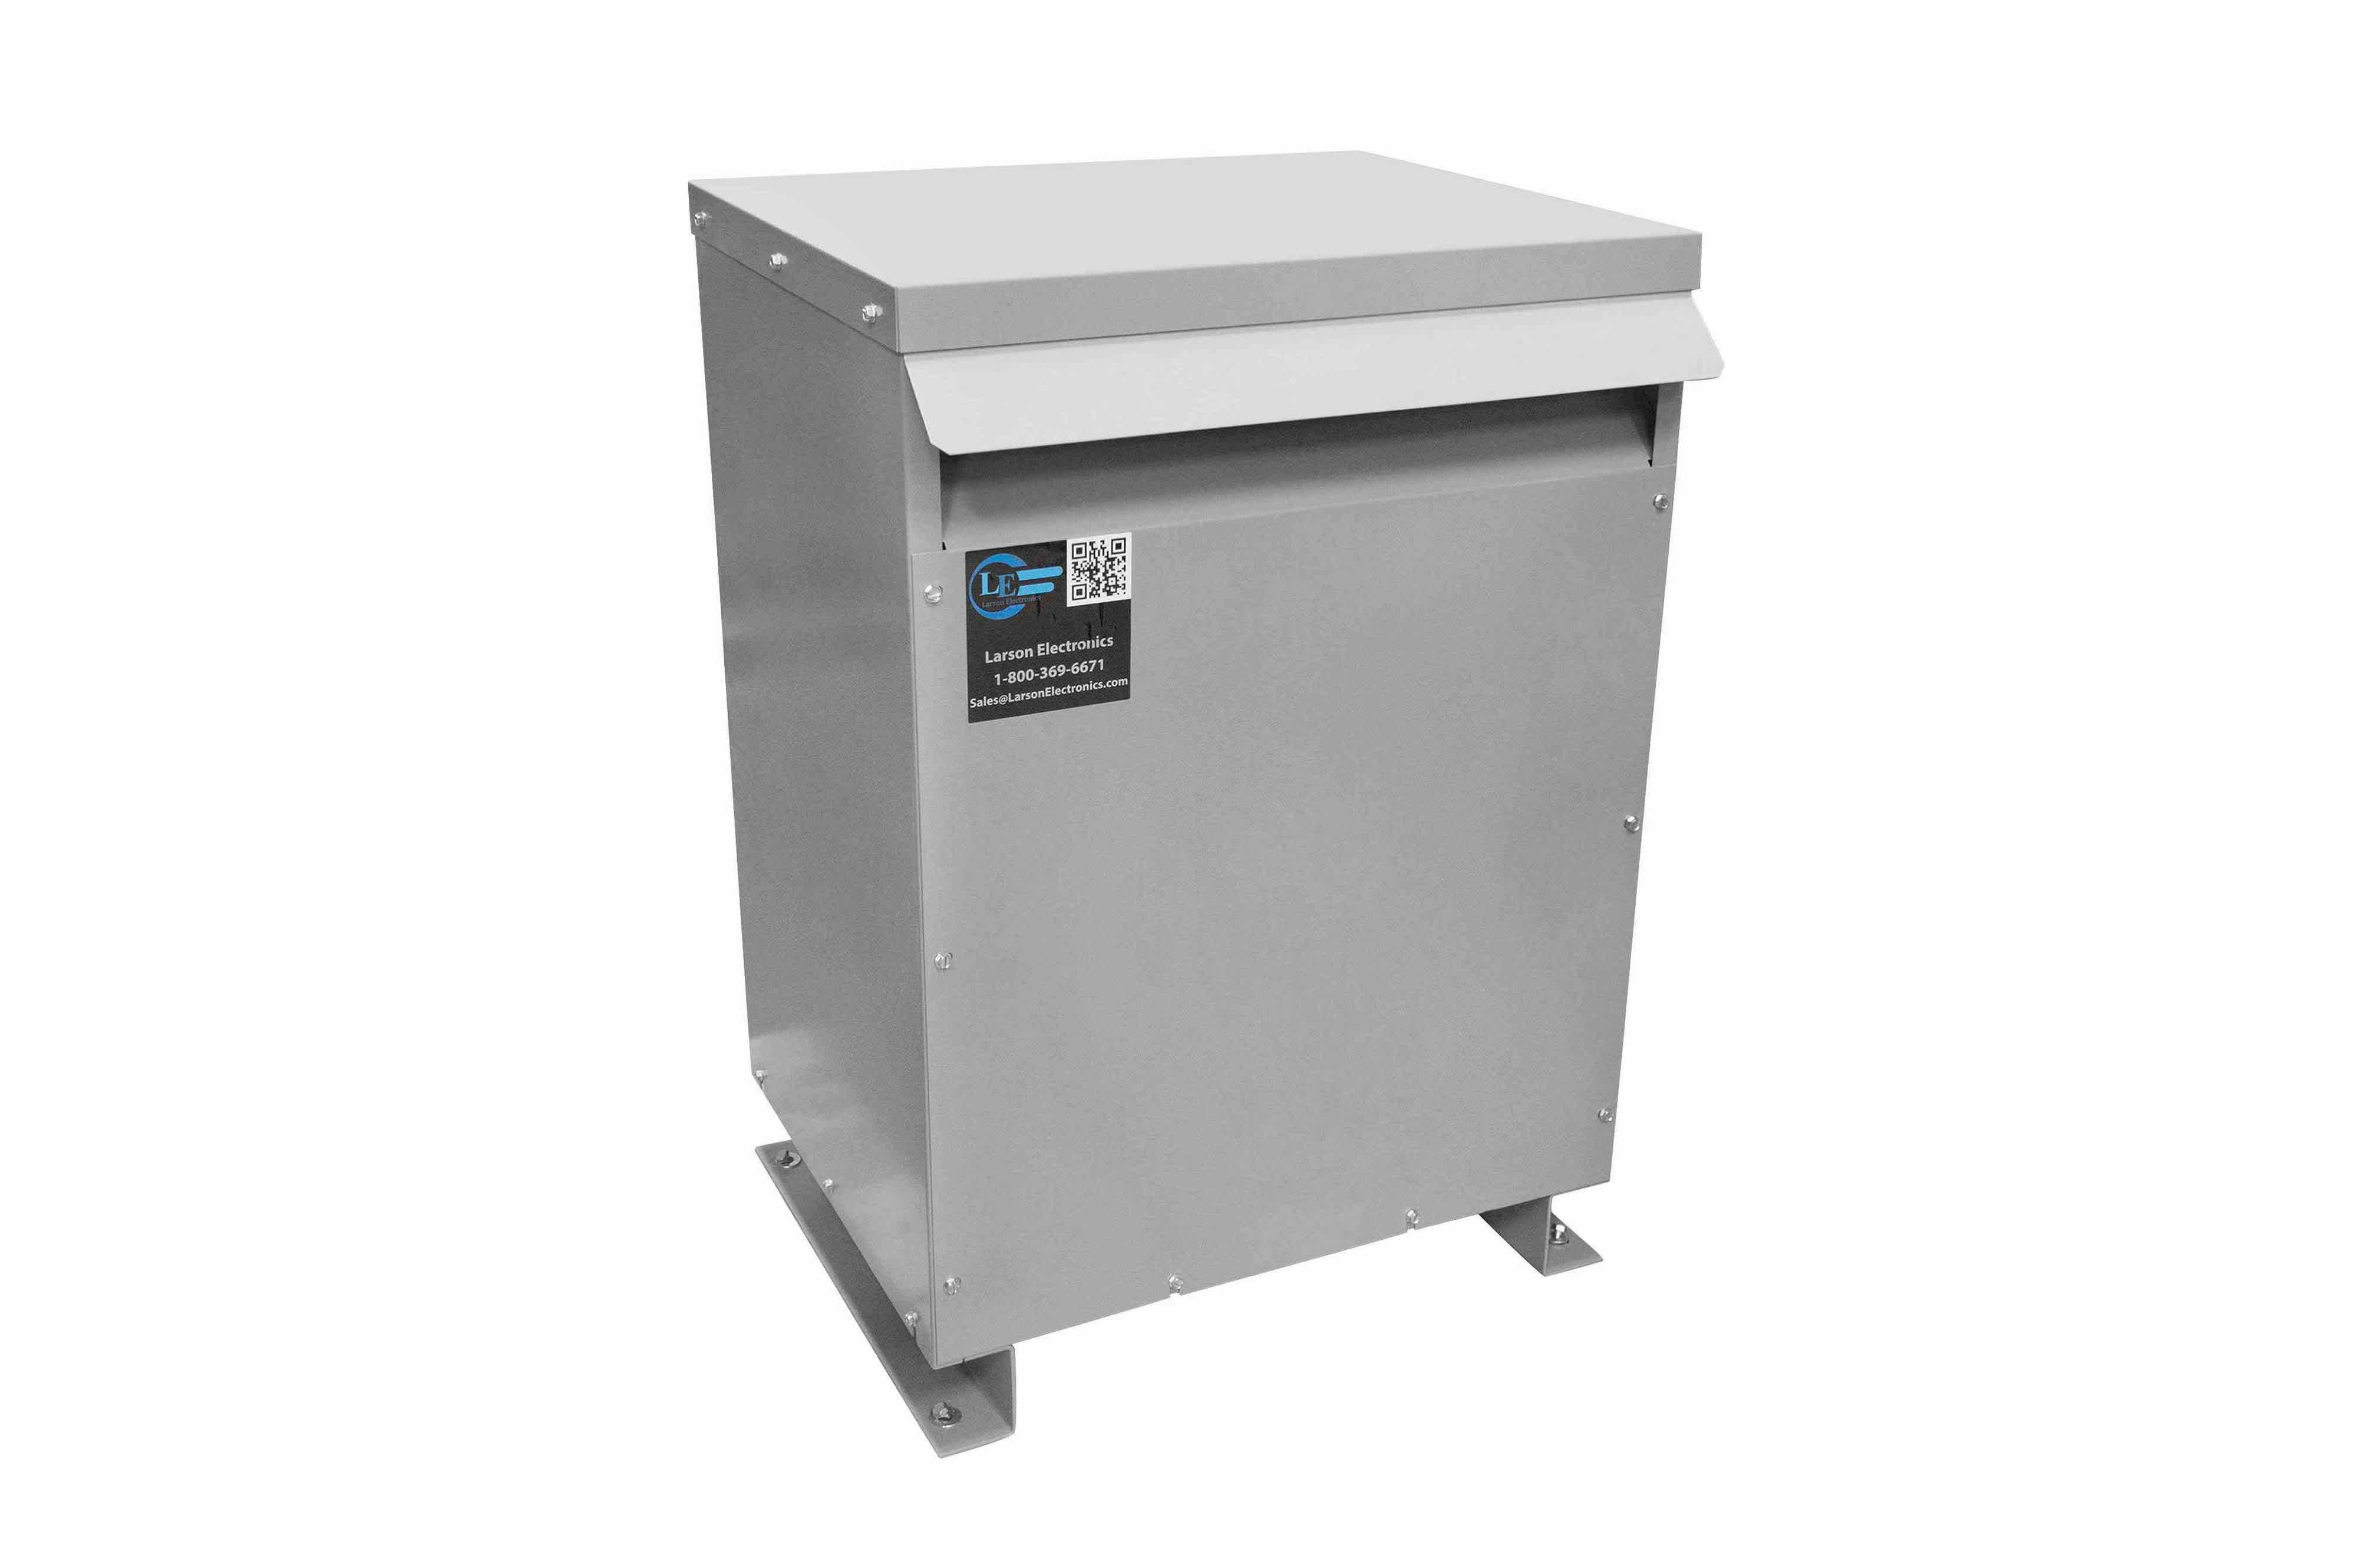 112.5 kVA 3PH Isolation Transformer, 400V Wye Primary, 240V Delta Secondary, N3R, Ventilated, 60 Hz